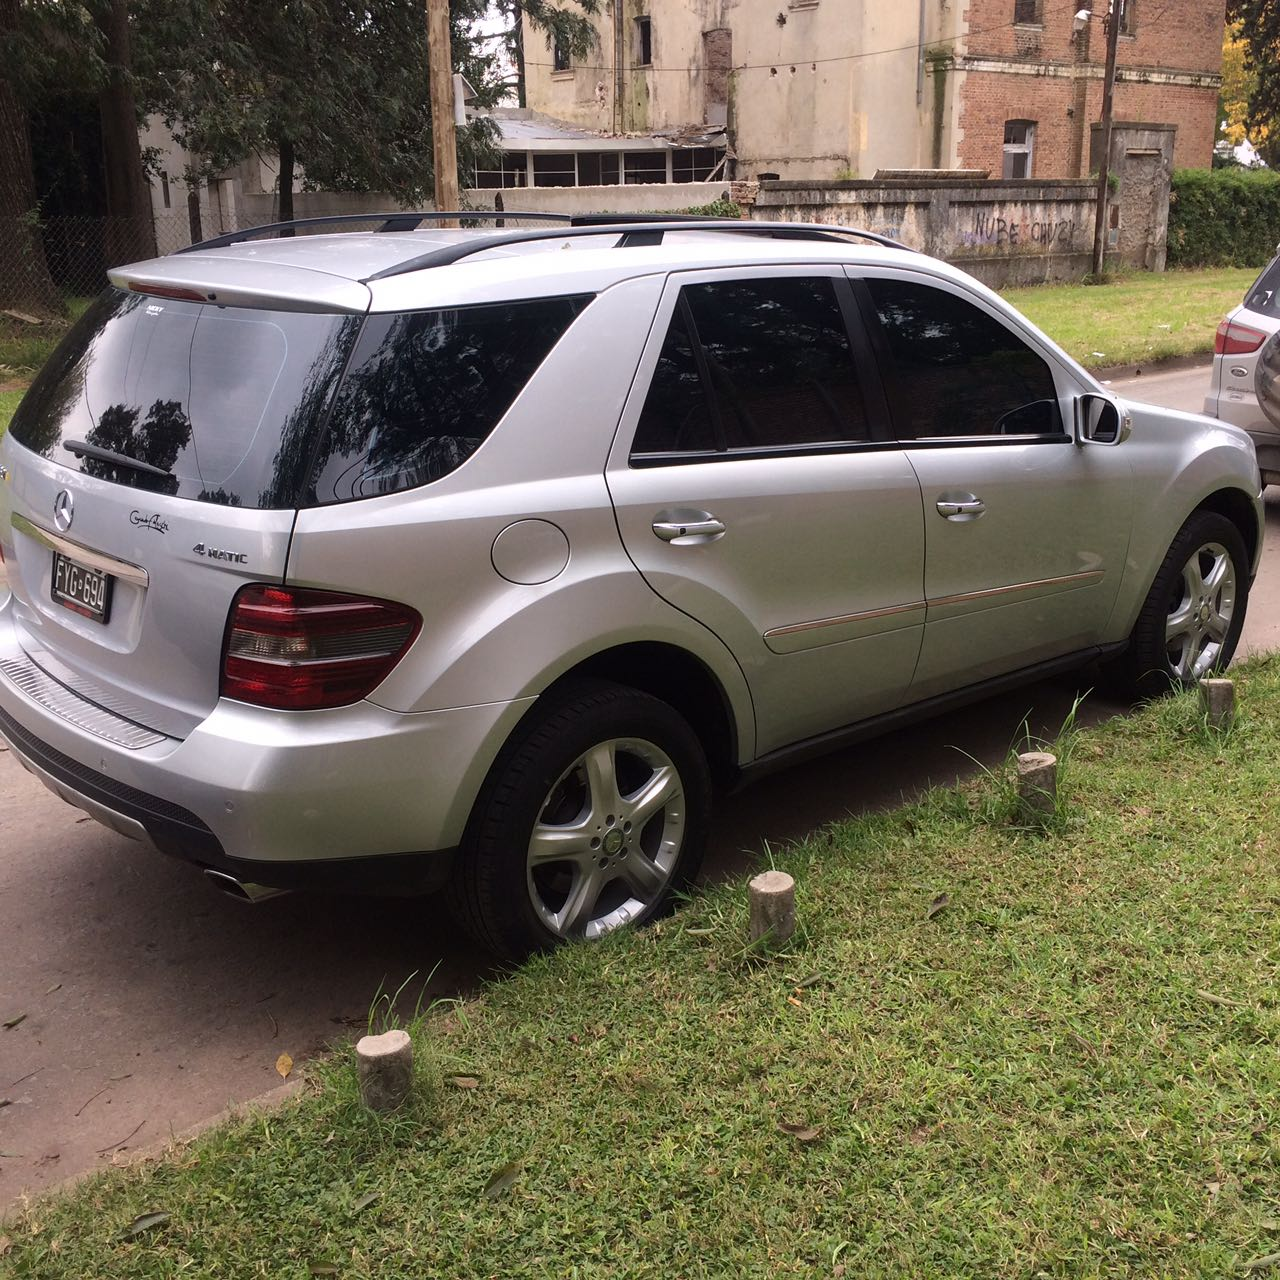 Mercedes benz ml 350 4 matic luxury 2007 170000km kawacolor for Mercedes benz ml 350 2007